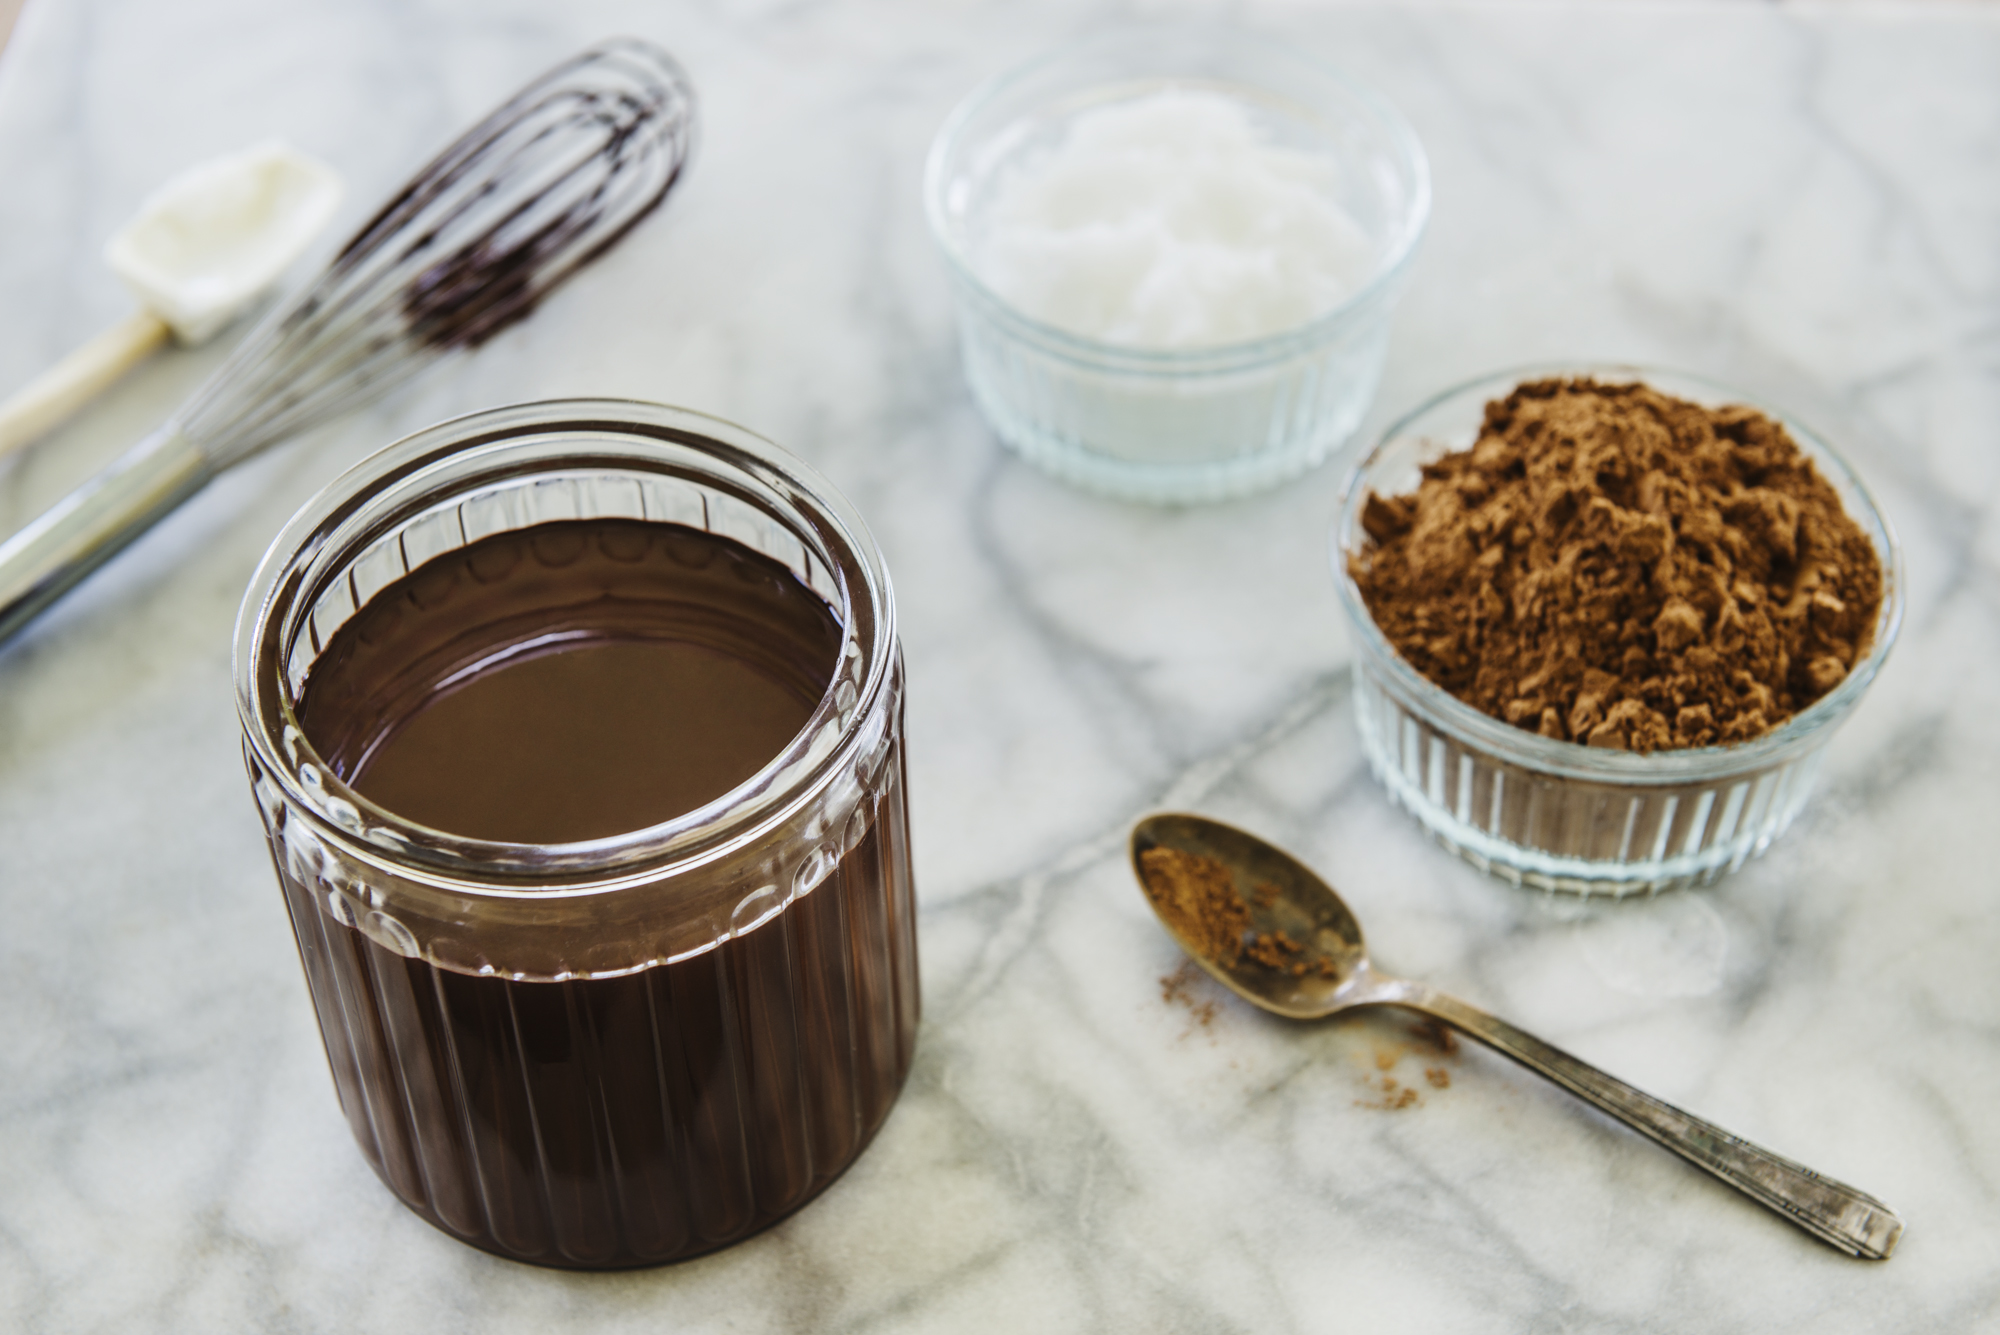 Chocolate Magic Shell   makes ~1½ cups    Ingredients   · 12 Ounces of Pure Unsweetened Cacao or Sweetened Cocoa Powder  · 8 Ounces of Virgin Coconut Oil   Directions   1. Measure the coconut oil into a 4 cup liquid measuring cup. This allows room for stirring in the cacao powder.  2. Slowly and gradually stir the cacao powder into the coconut oil until the mixture becomes homogenous and smooth.  3. Store in a 2 cup tightly covered lidded glass jar at room temperature until ready for use.  4. Upon request for a chocolate covered popsicle, uncover the popsicles one at a time and dip into the sauce.